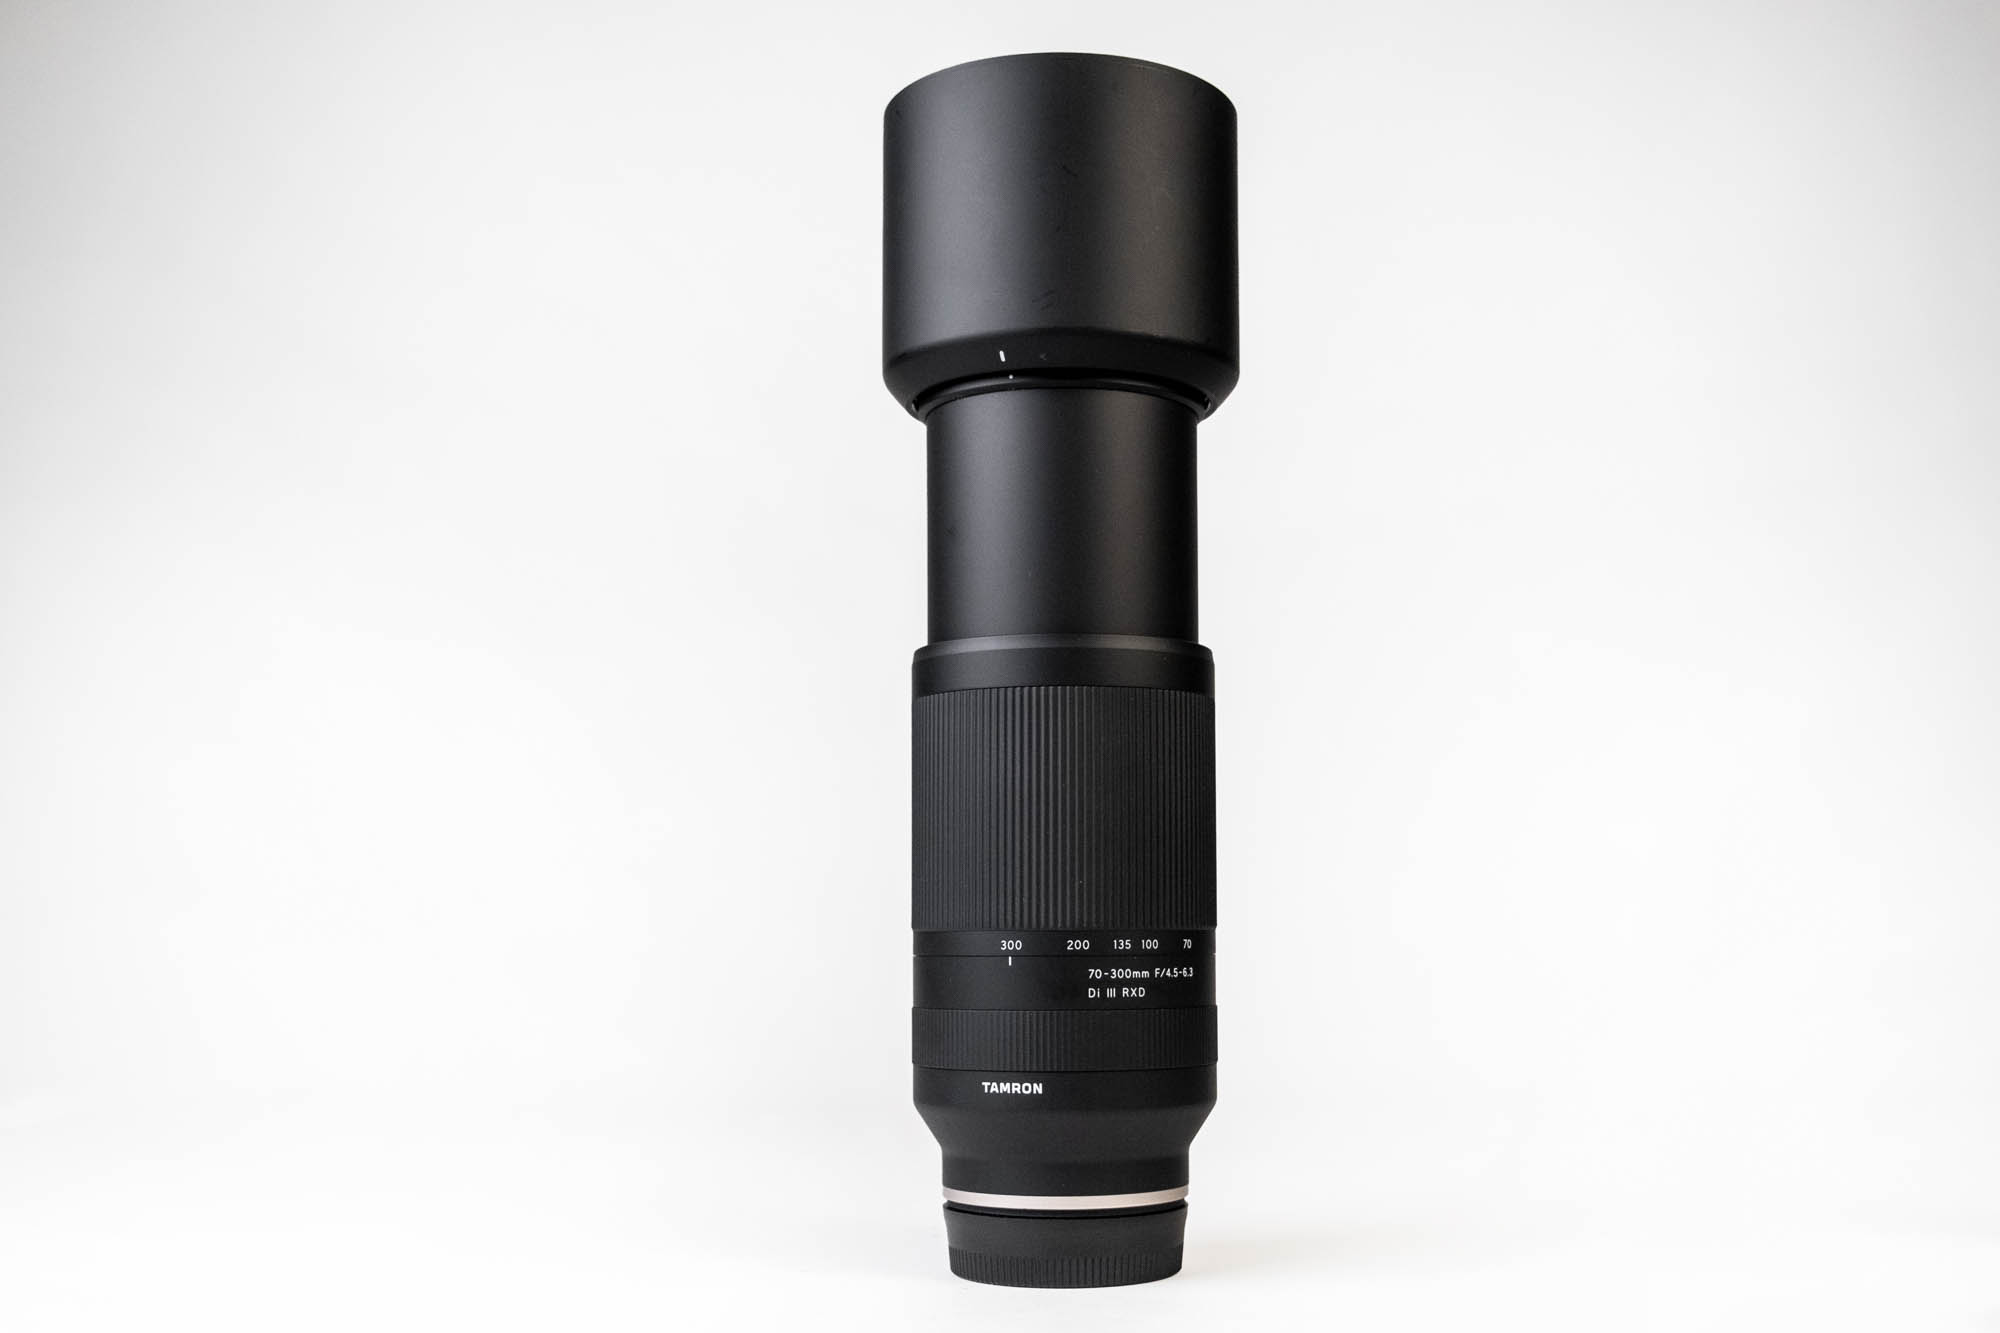 Tamron 70-300mm for Sony review